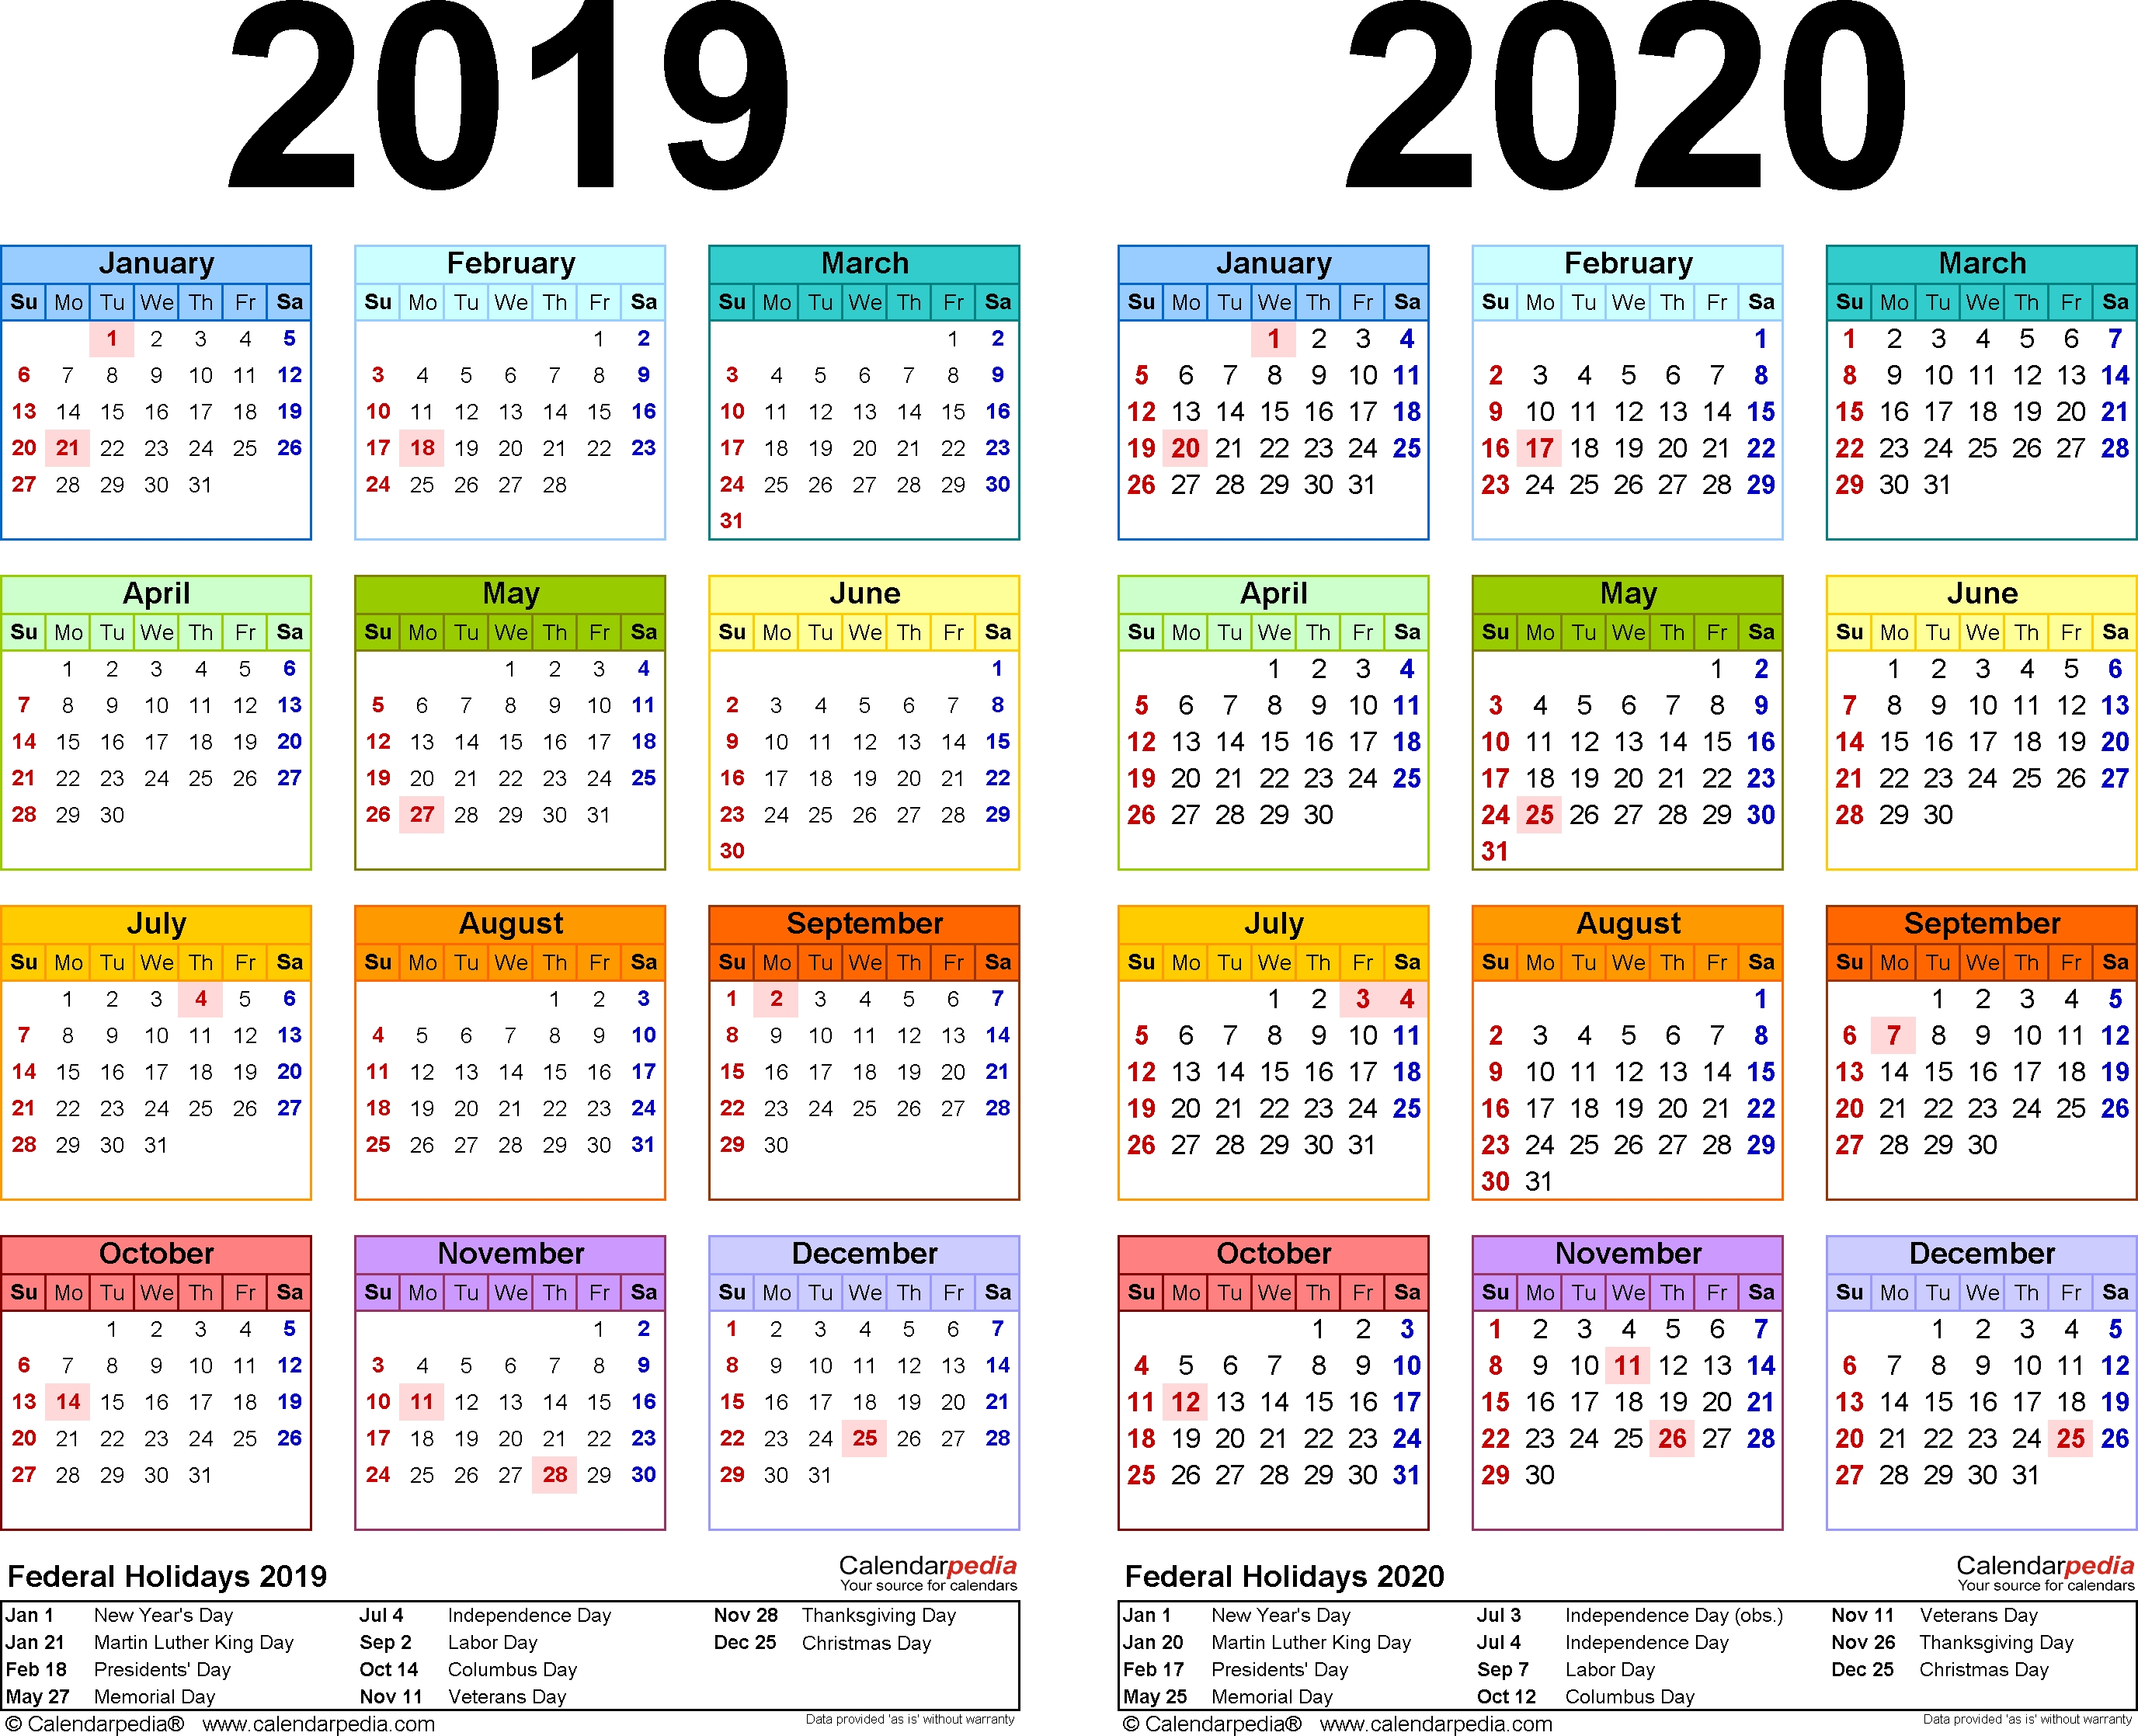 2019-2020 Calendar - Free Printable Two-Year Word Calendars regarding Macs 2019-2020 Calendar